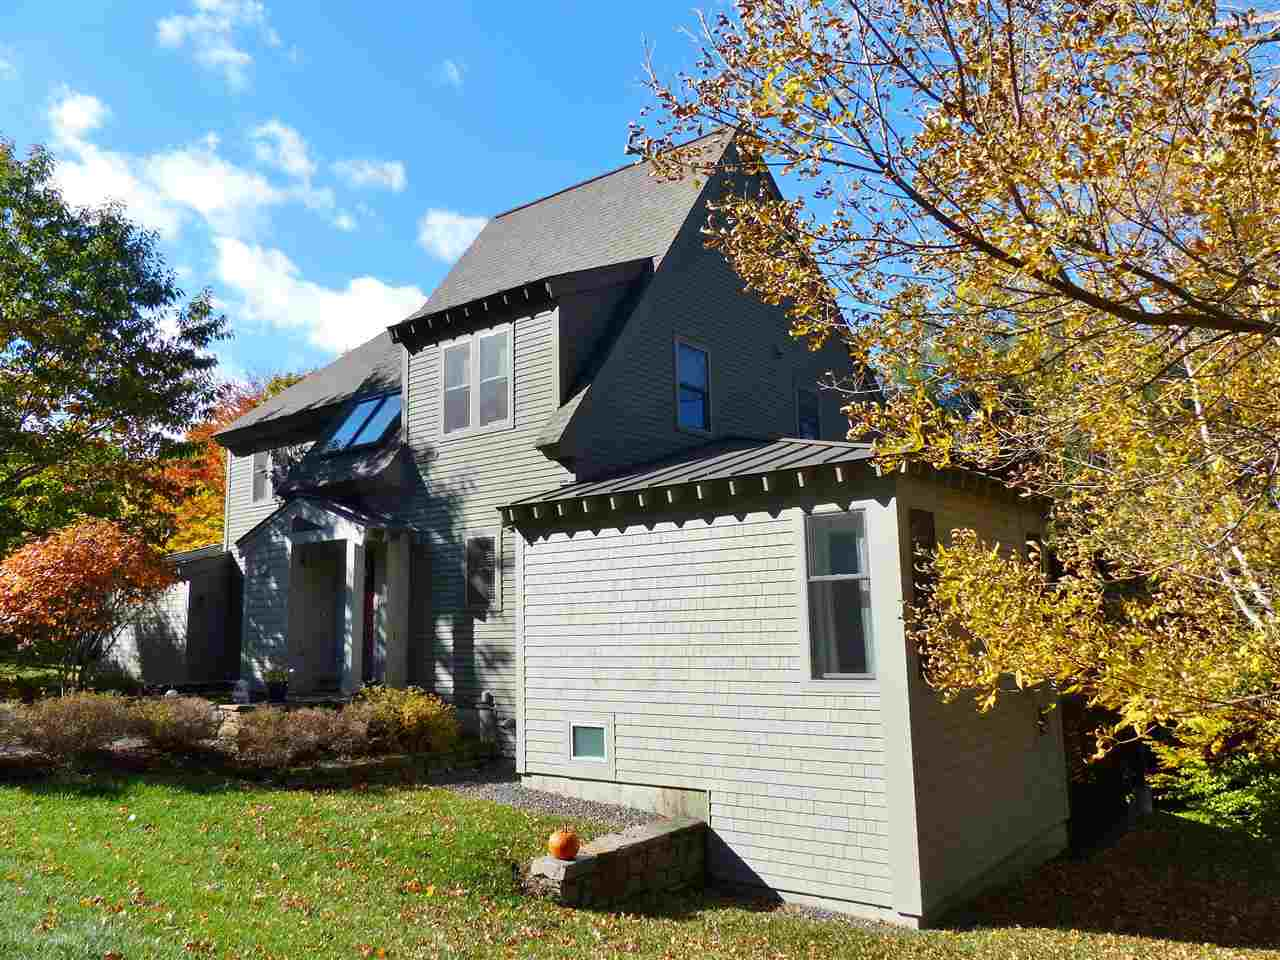 VILLAGE OF QUECHEE VT IN TOWN OF HARTFORD VT Condo for sale $$369,000 | $148 per sq.ft.